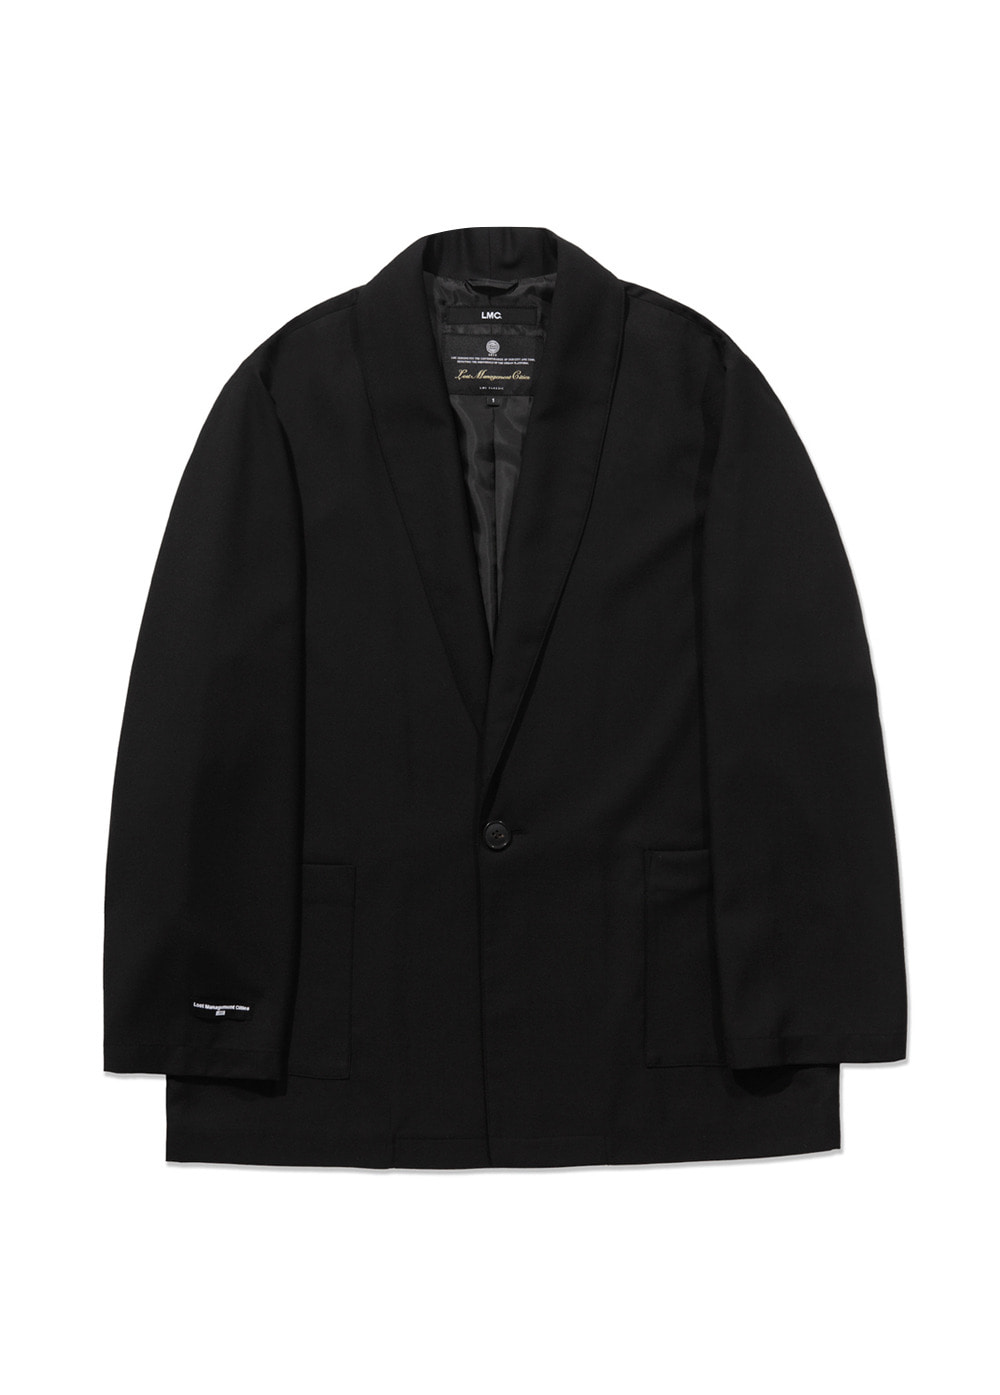 LMC GANG SUIT JACKET black